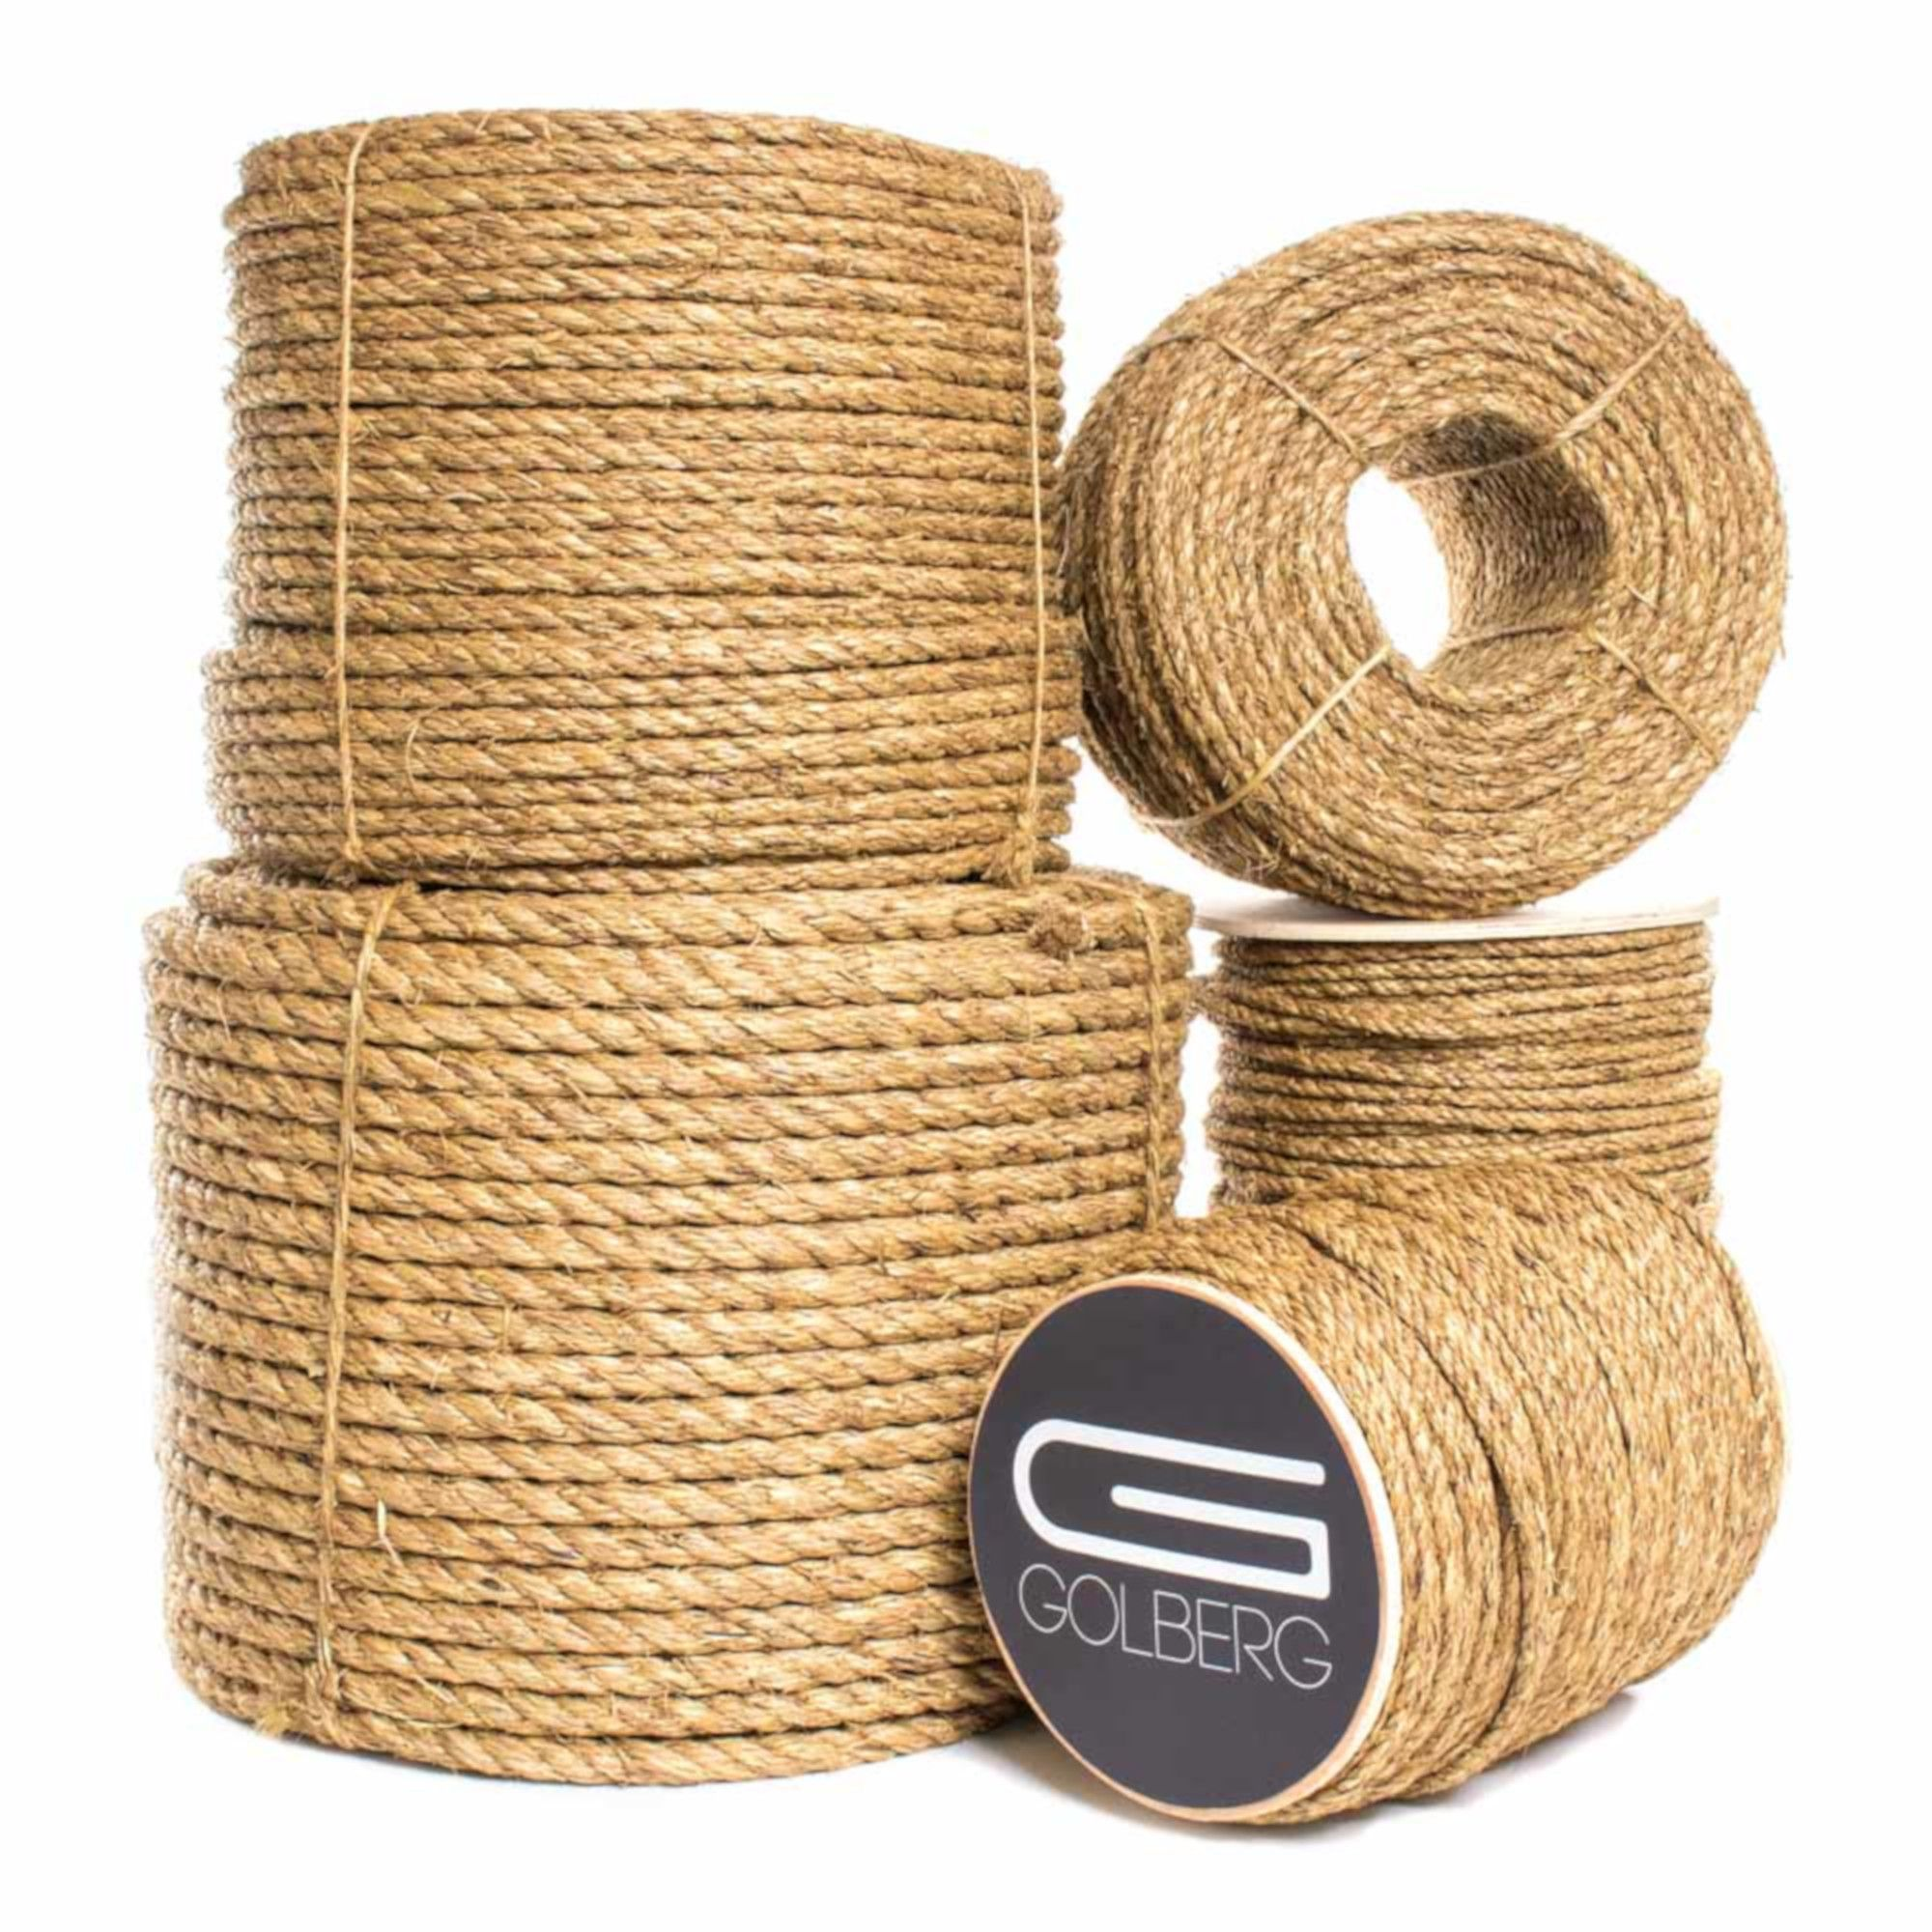 Golberg Manila Rope Heavy Duty 3 Strand Natural Fiber 1 4 Inch 5 16 Inch 3 8 Inch 1 2 Inch 5 8 Inch 3 4 Inch 1 Inch 2 Inch Available In Different L In 2020 Manila Rope Hemp Rope How To Make Rope